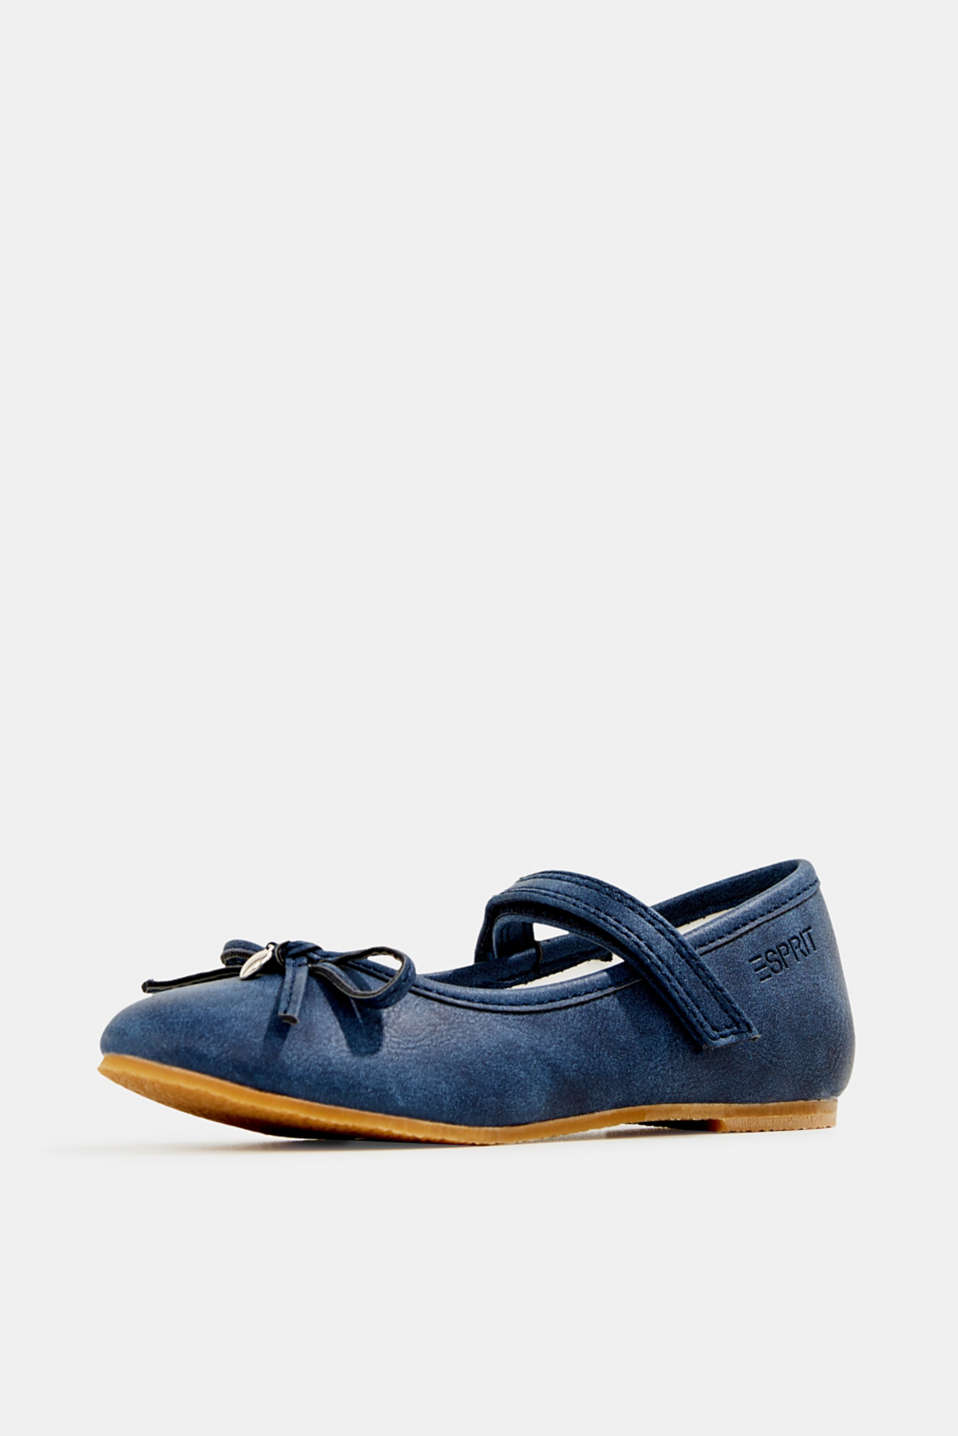 Ballerinas with Velcro straps, in faux leather, NAVY, detail image number 2